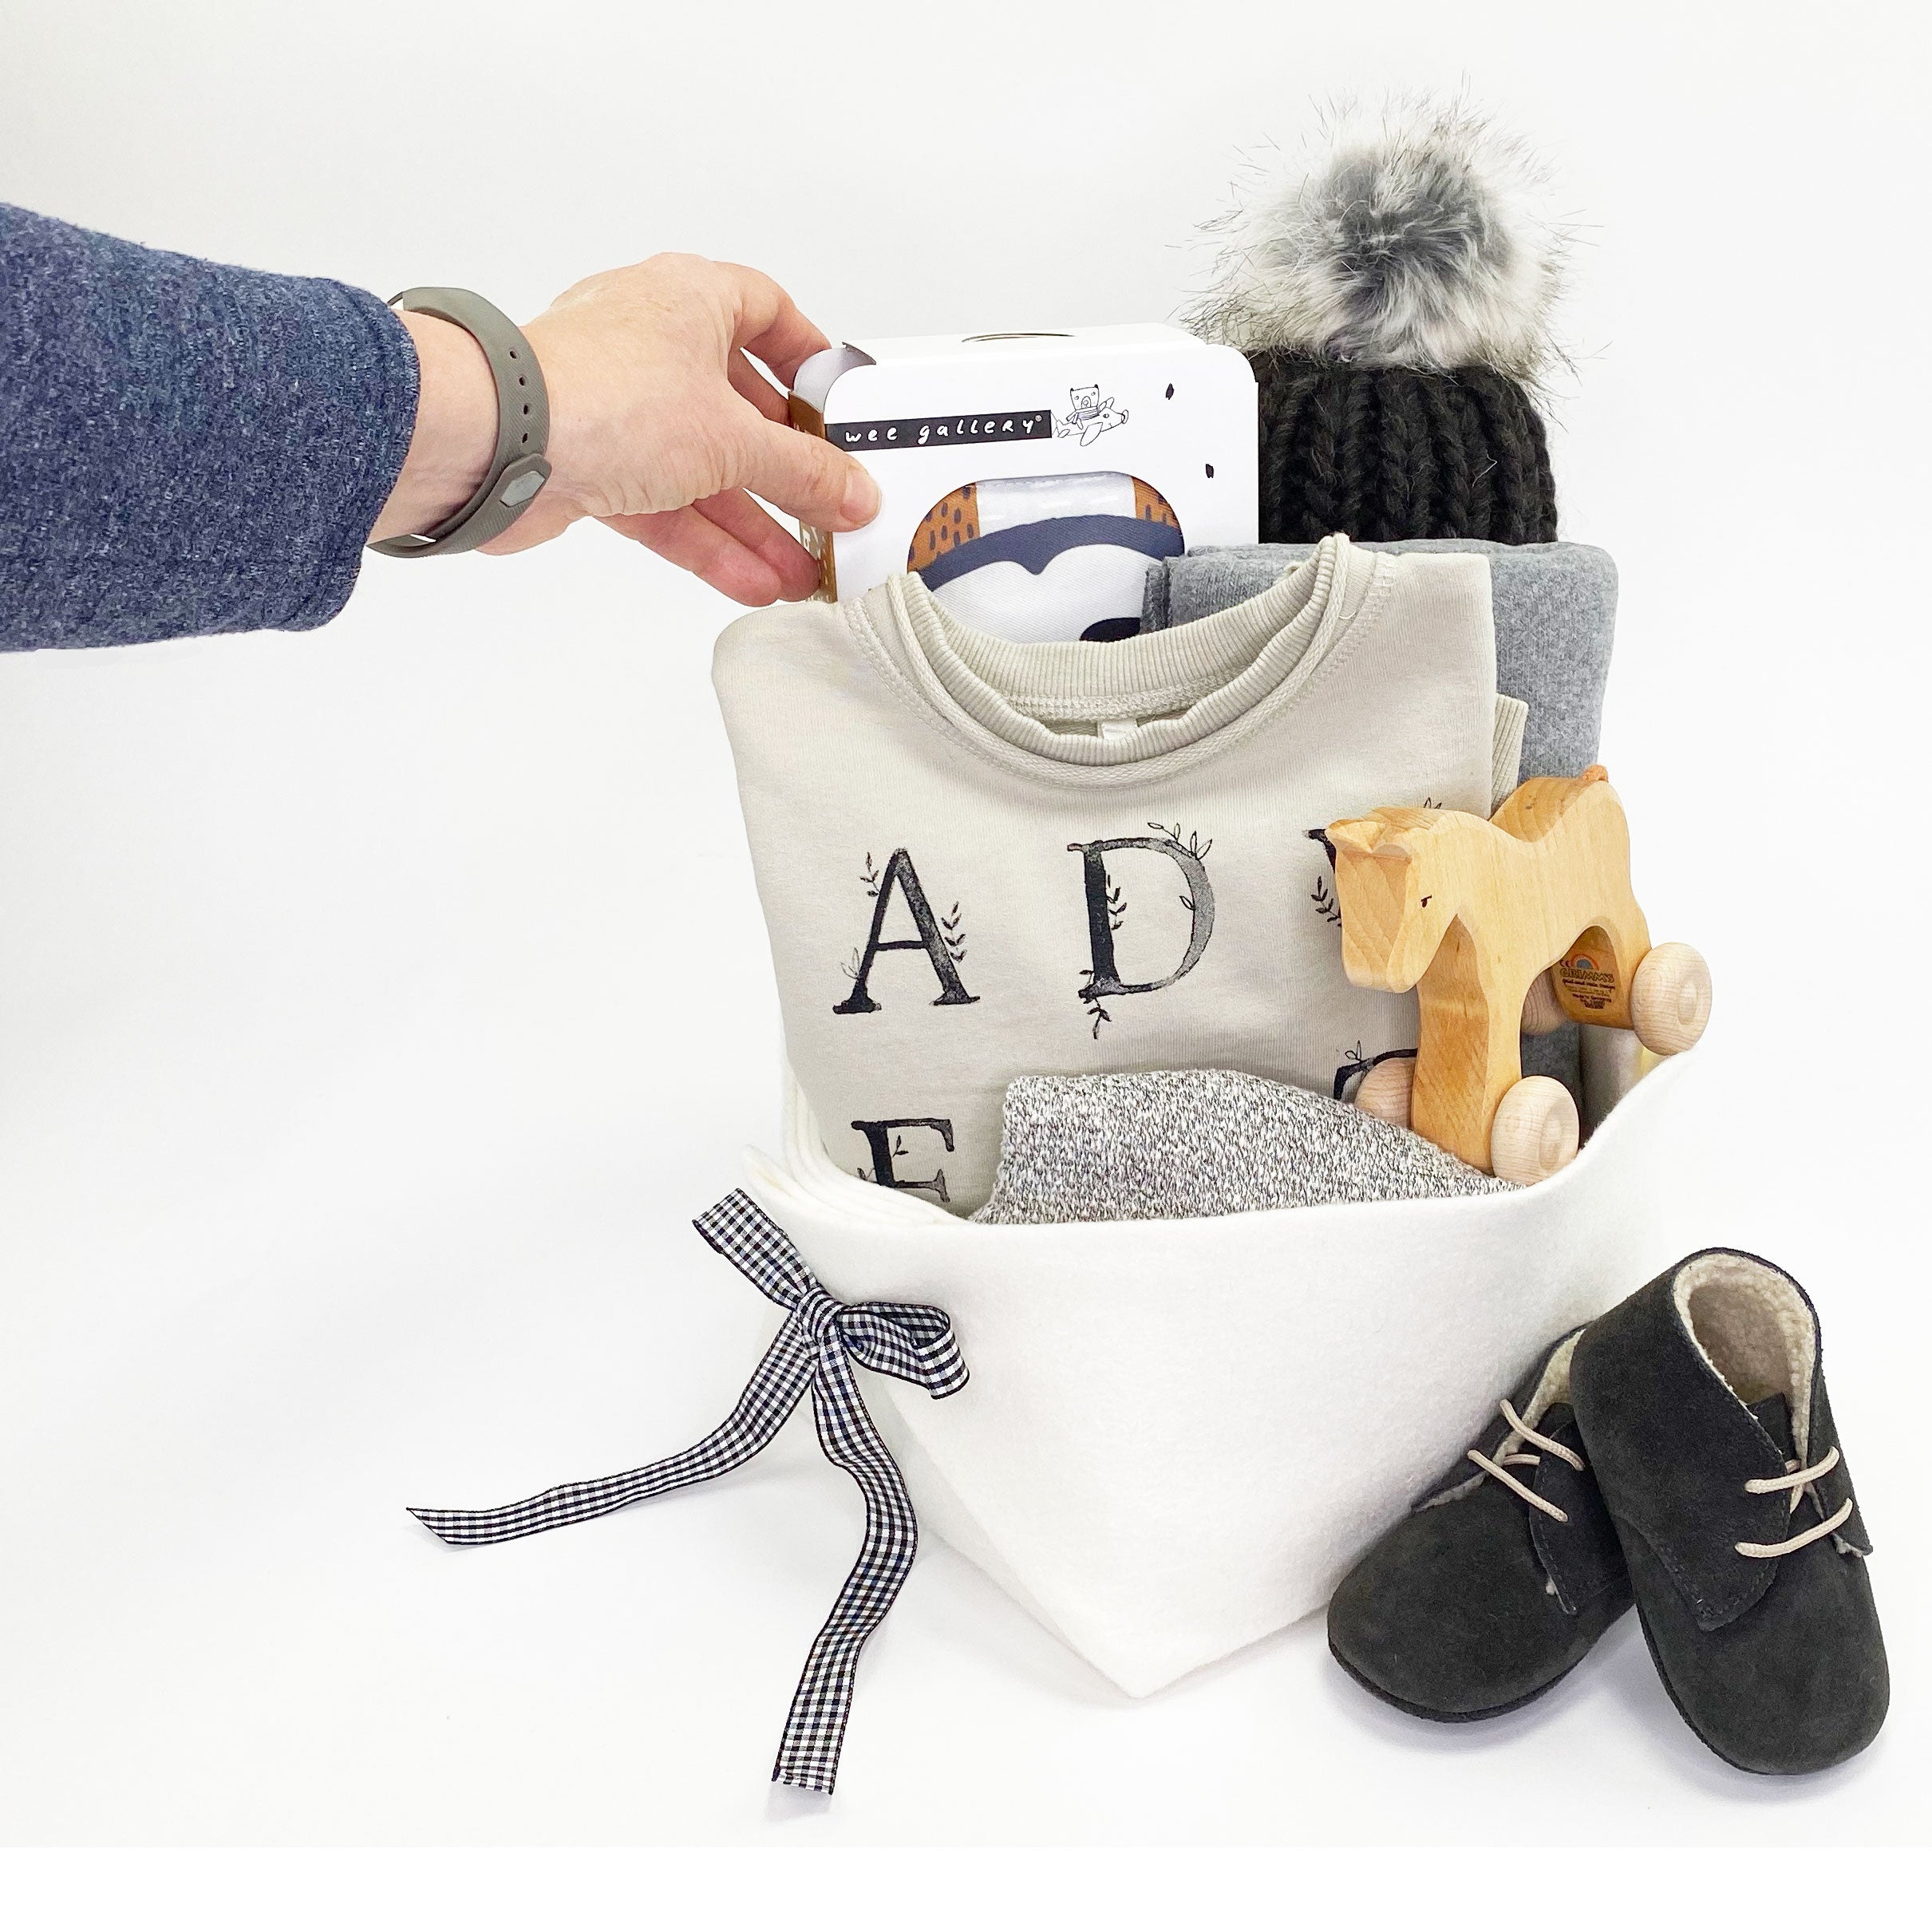 Luxury Baby Baskets by Bonjour Baby Baskets - Best Corporate Baby Gifts